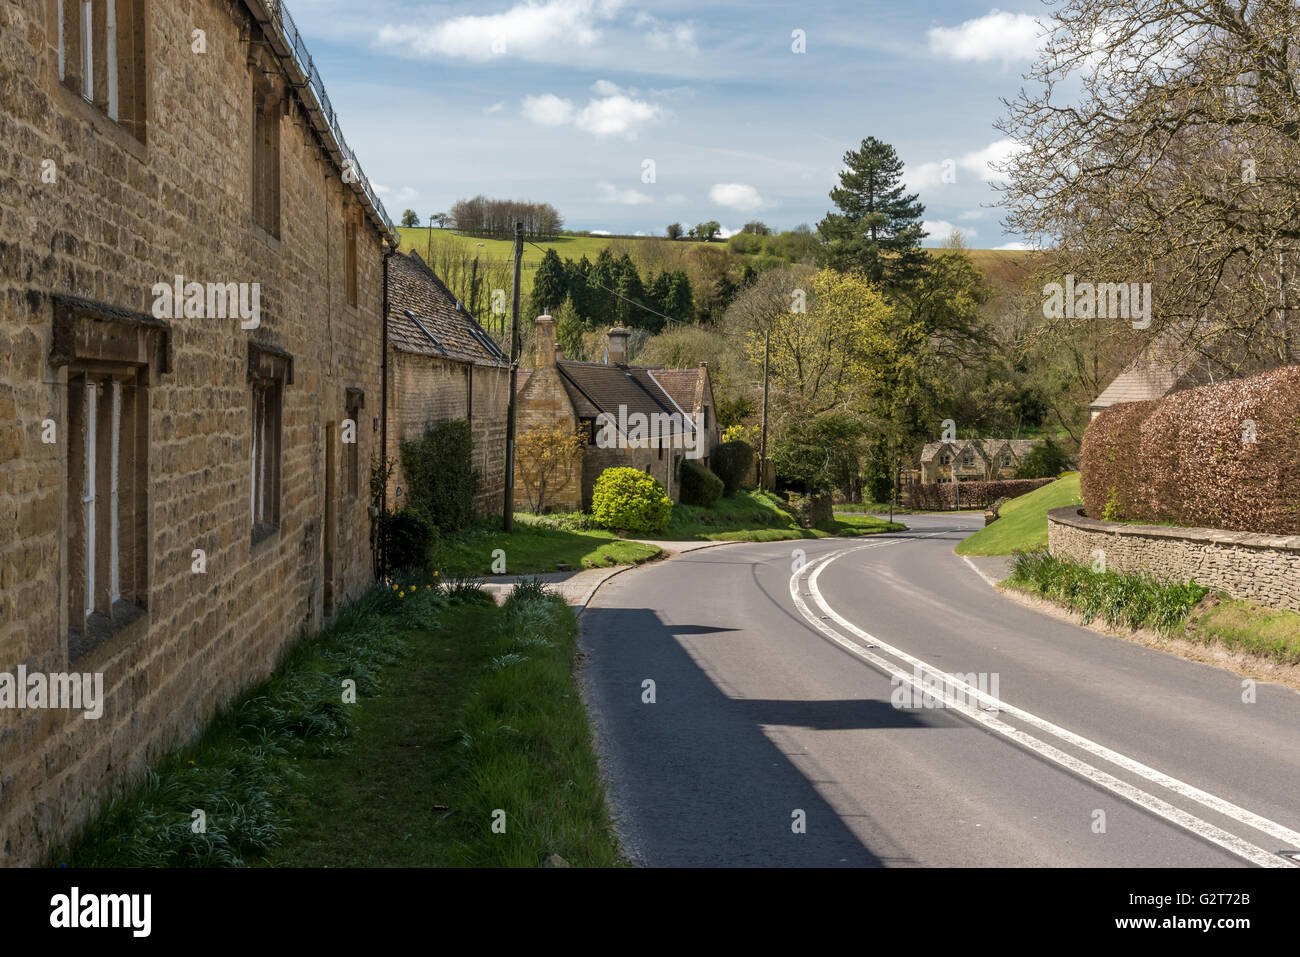 Typical English Village scene in the Cotswolds - Stock Image